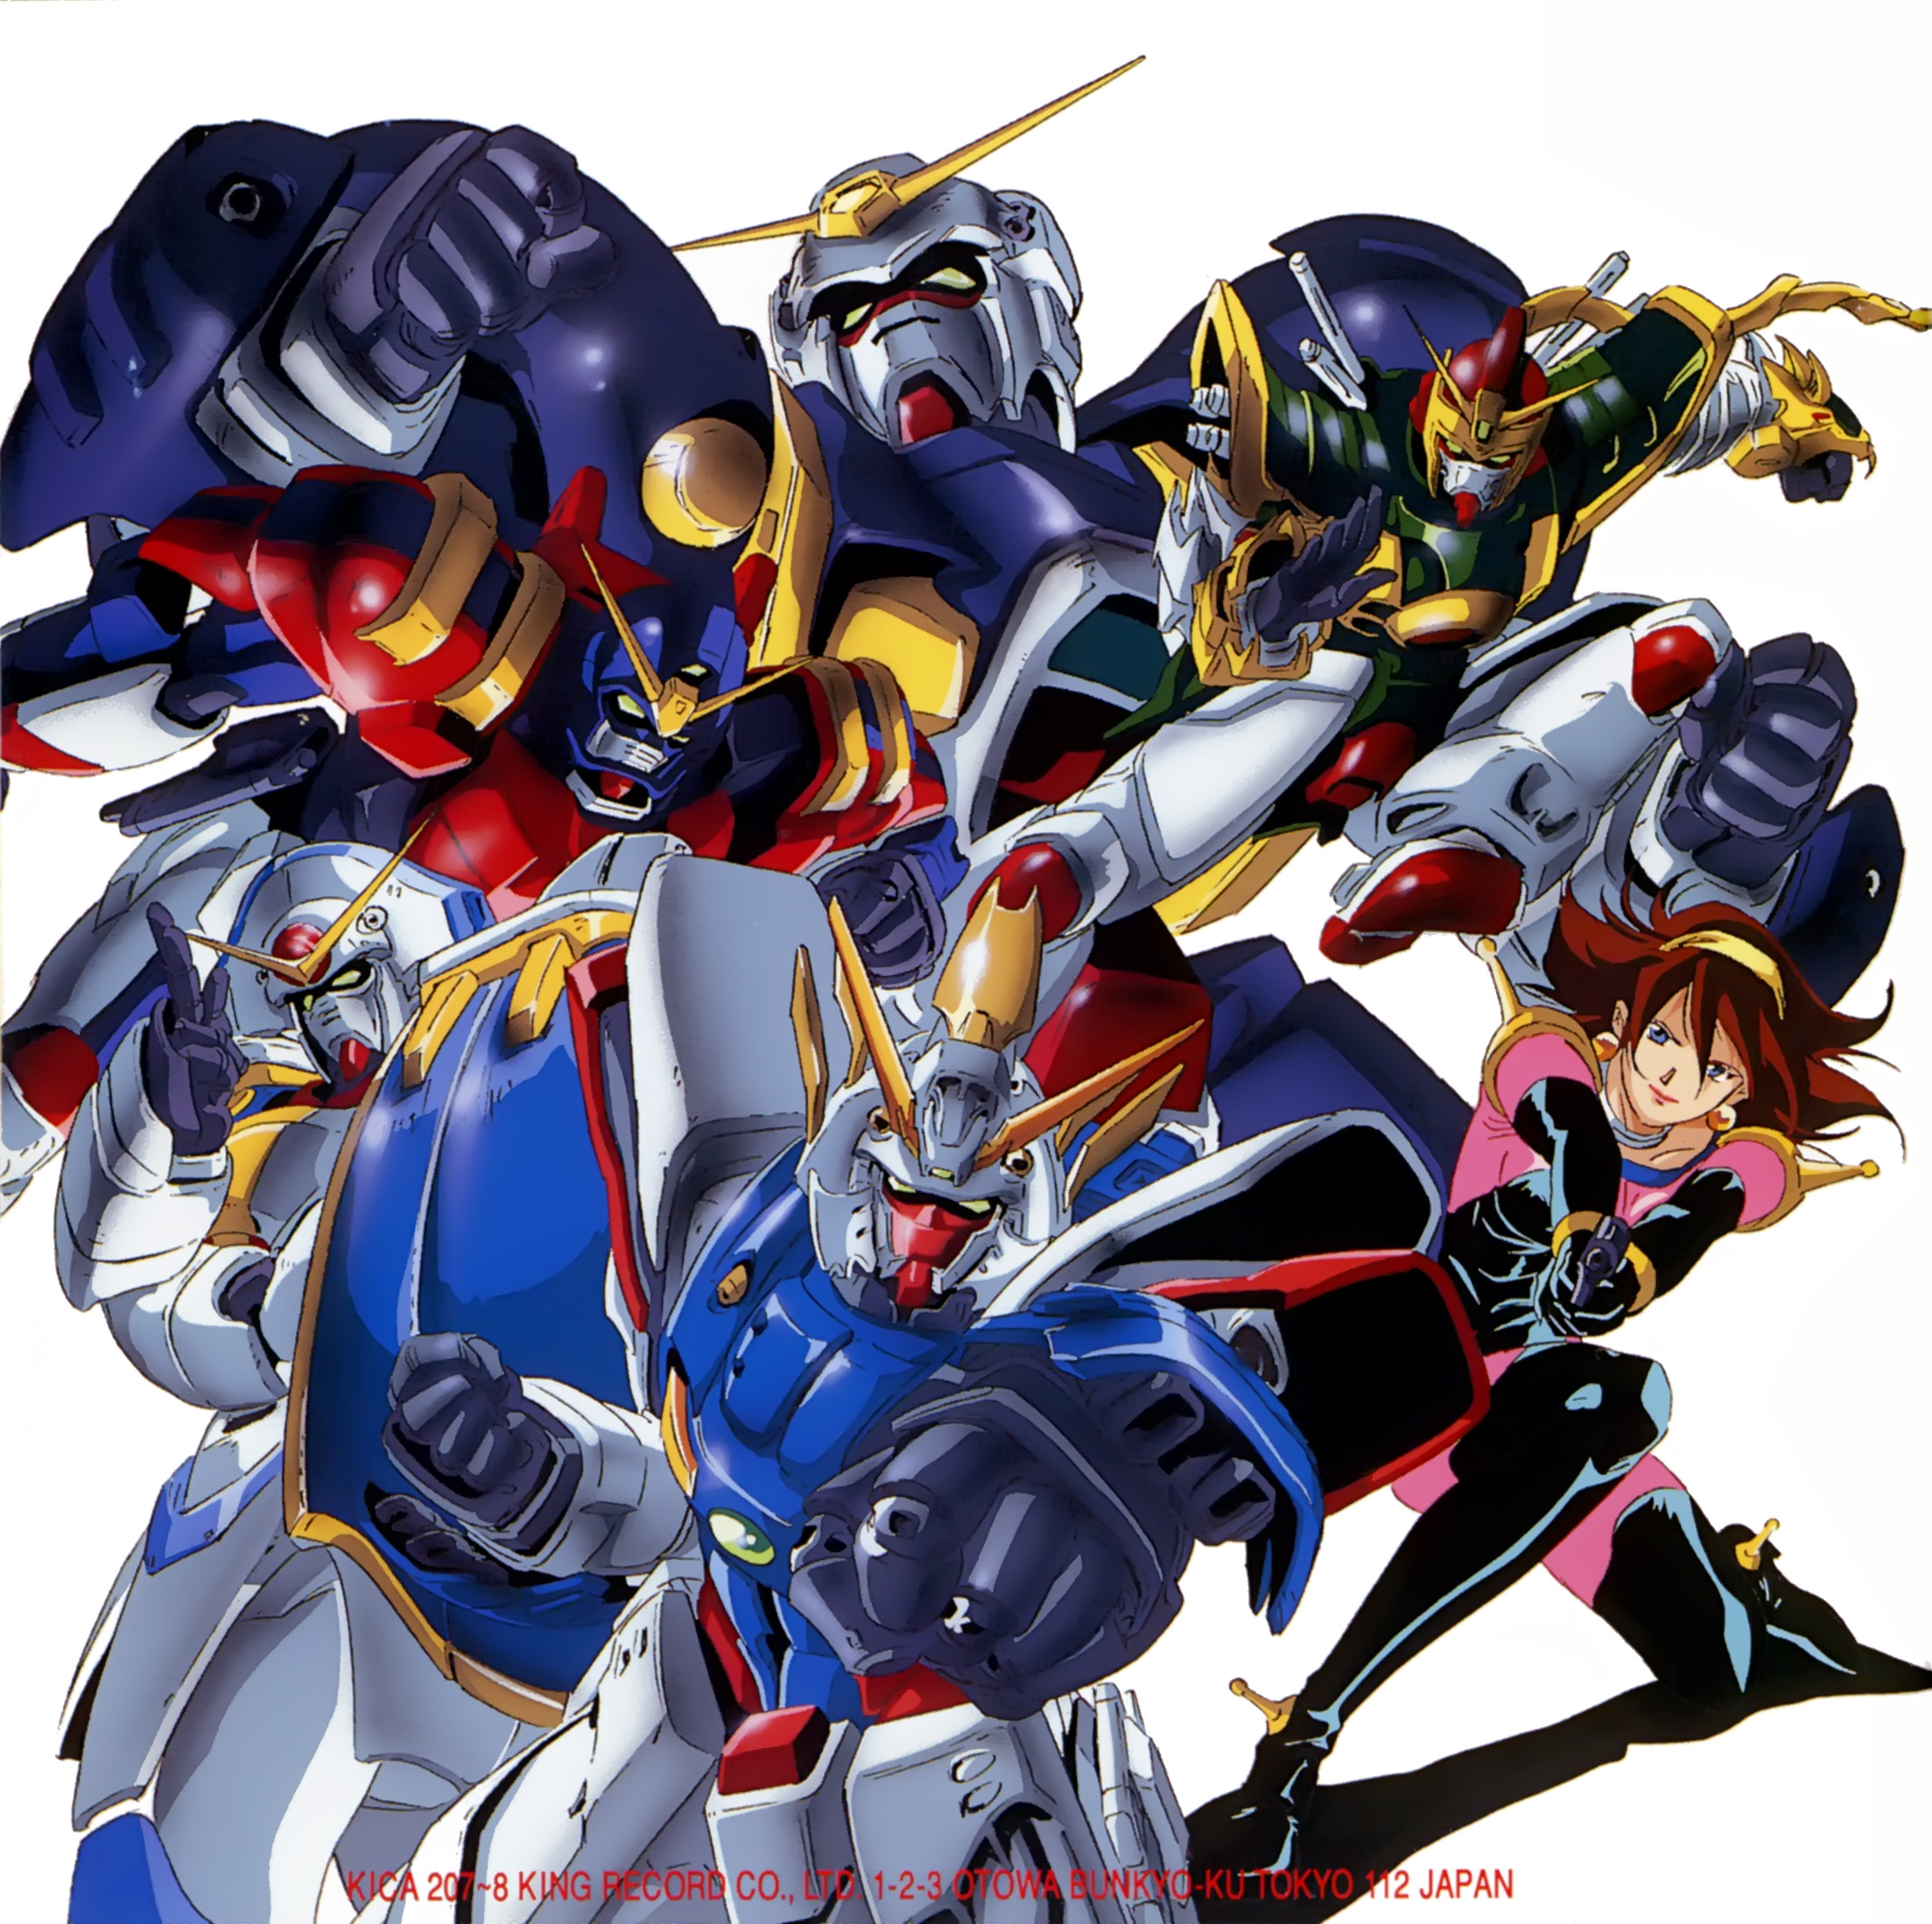 Image of Mobile Fighter G Gundam   Anime Vice 2207x2198